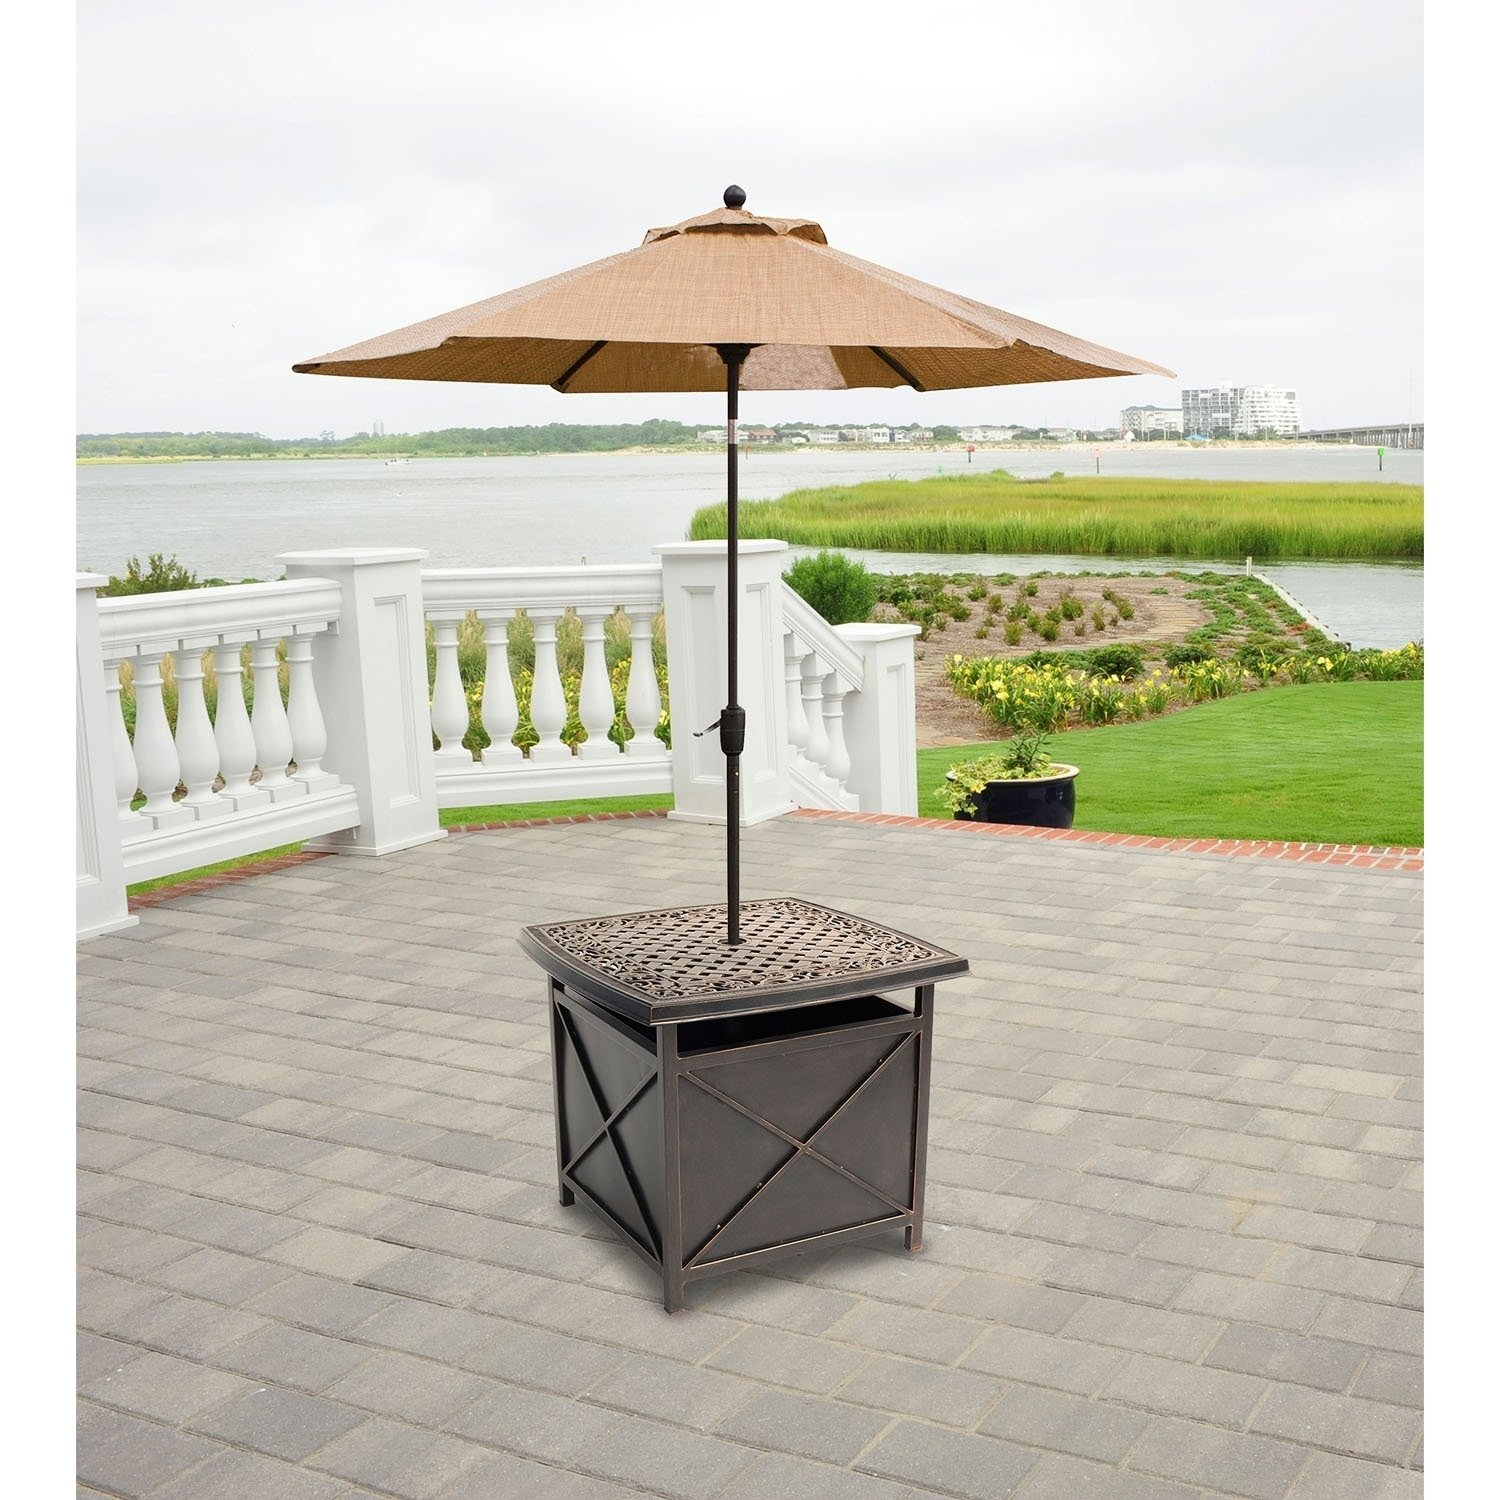 hanover outdoor traditions tradumbtbl cast top side table and umbrella stand iron frame queen tablecloth for inch round accent metal threshold cover farm style wood end turned leg